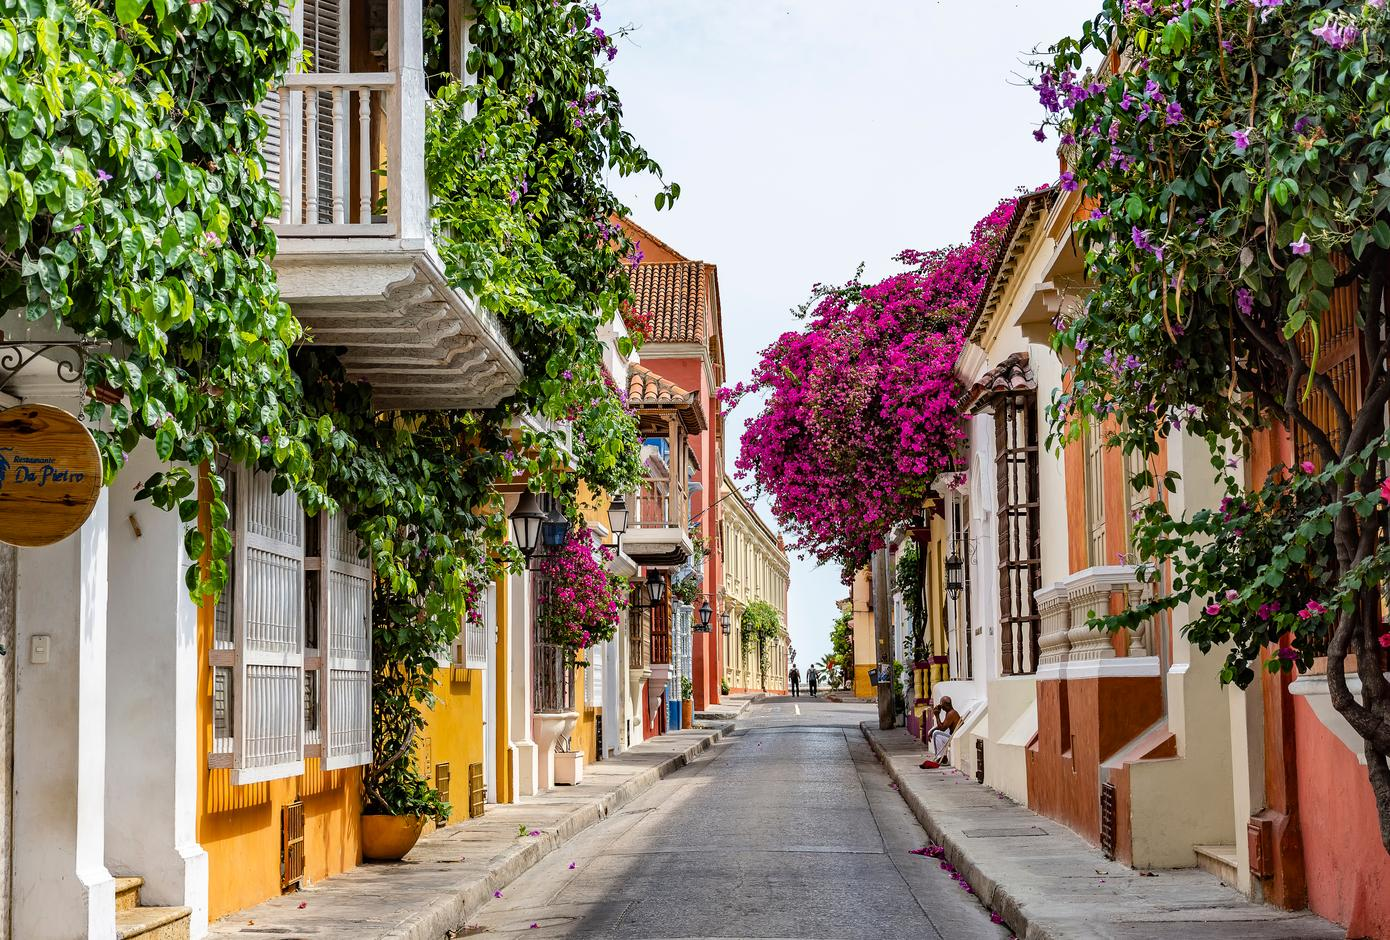 A street lined with colorful houses decorated with cascading bougainvilleas in Cartagena, Colombia.